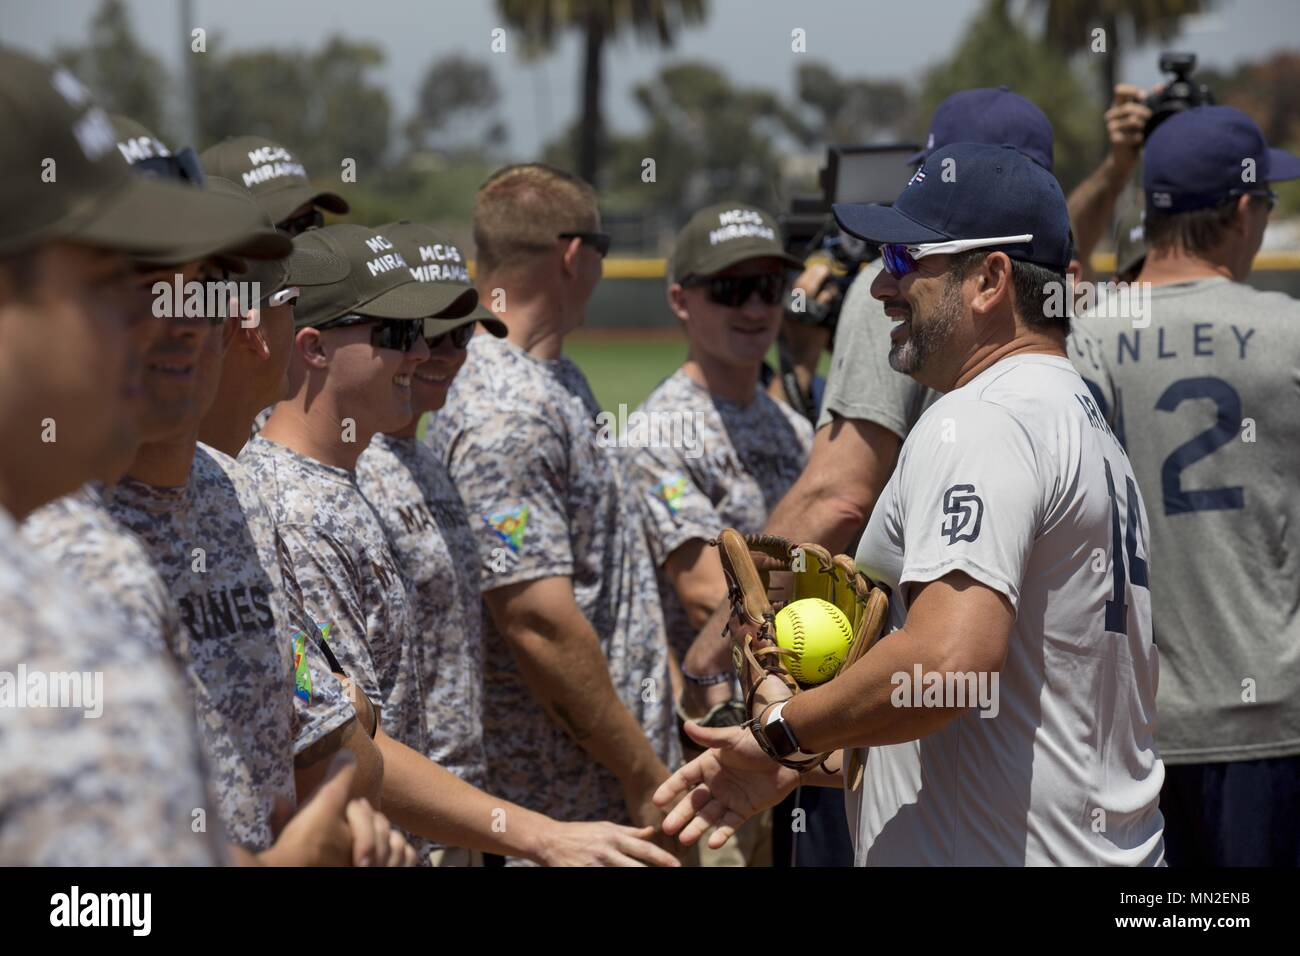 Marines with Marine Corps Air Station Miramar's softball team and San Diego Padres Alumni shake hands prior to playing a softball game on MCAS Miramar, Calif. May 10, May 10, 2018. The Padres Alumni came to demonstrate their support for the military with spirited competition and to thank service members of MCAS Miramar for their service. (U.S. Marine Corps photo by Cpl. Daniel Auvert/Released). () - Stock Image